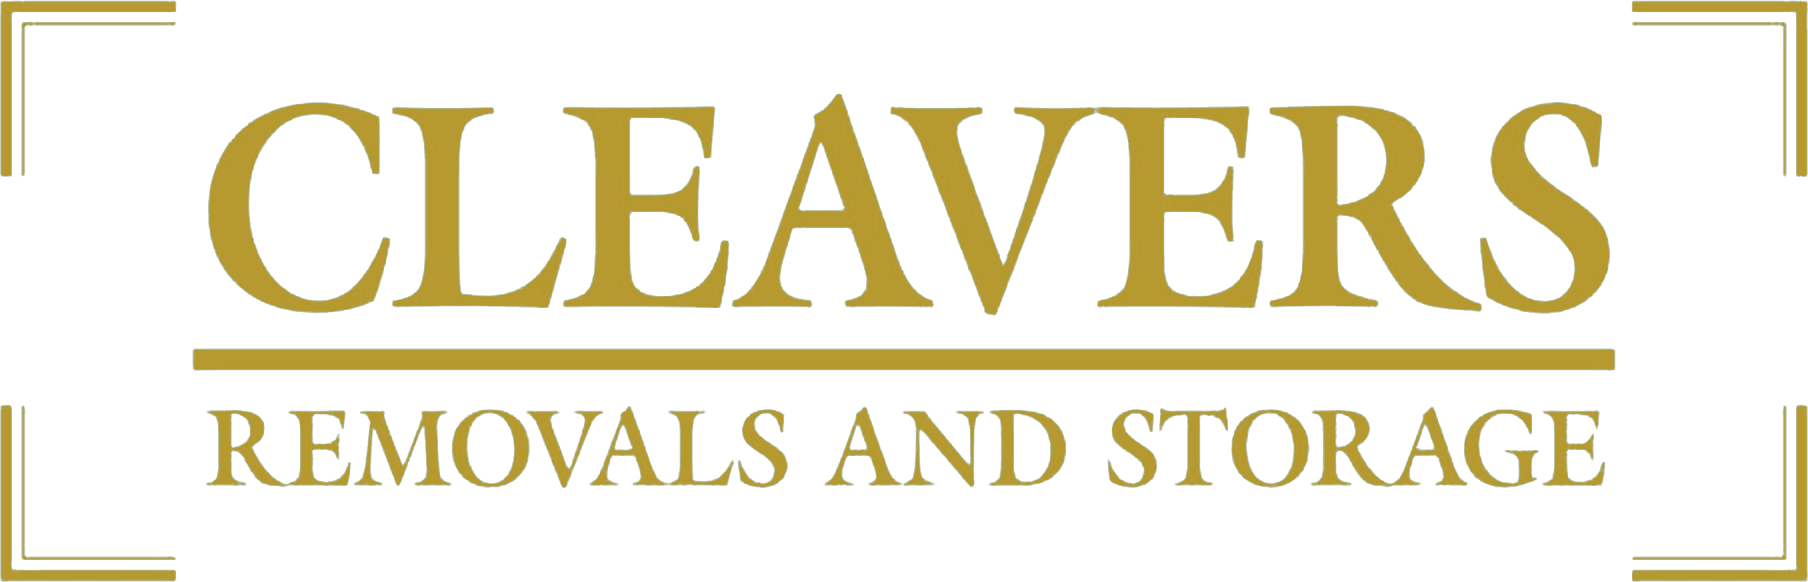 Cleavers Removals and Storage Logo